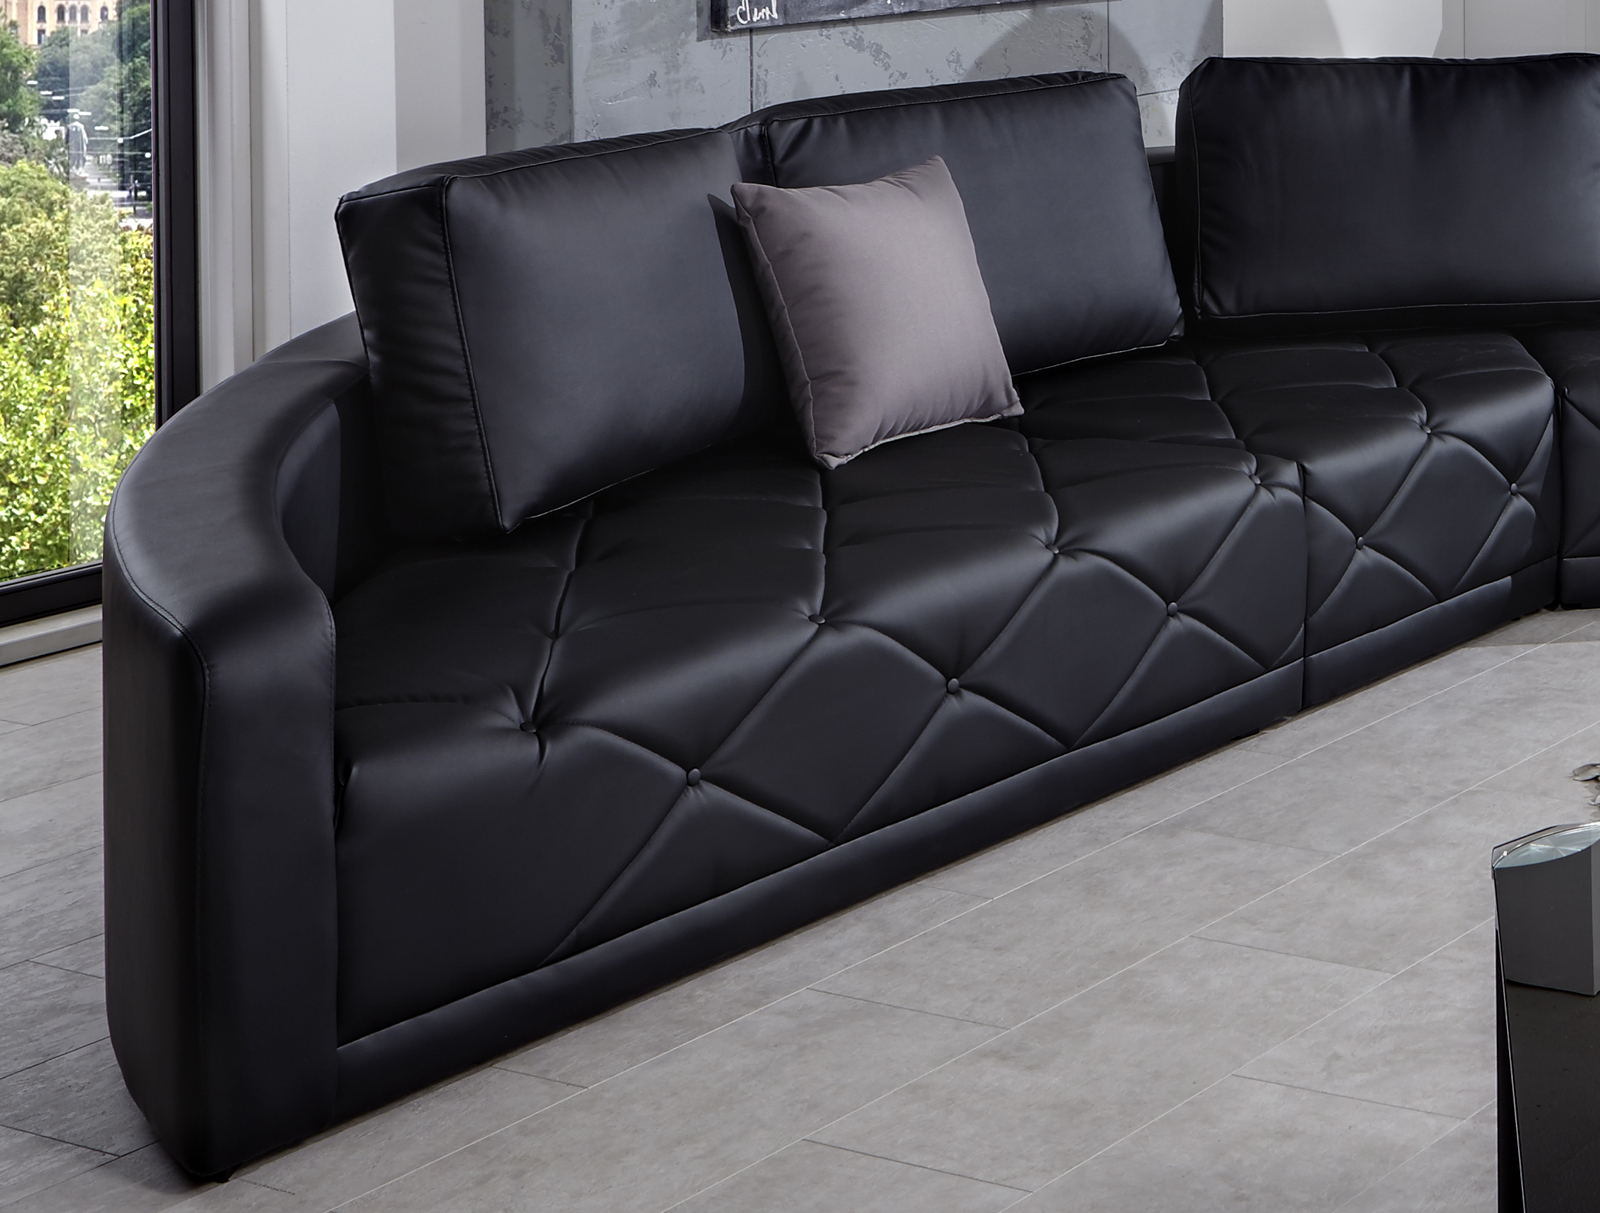 couch landschaft xxl inkl nur inkl lieferung with couch landschaft fabulous offene kuche couch. Black Bedroom Furniture Sets. Home Design Ideas